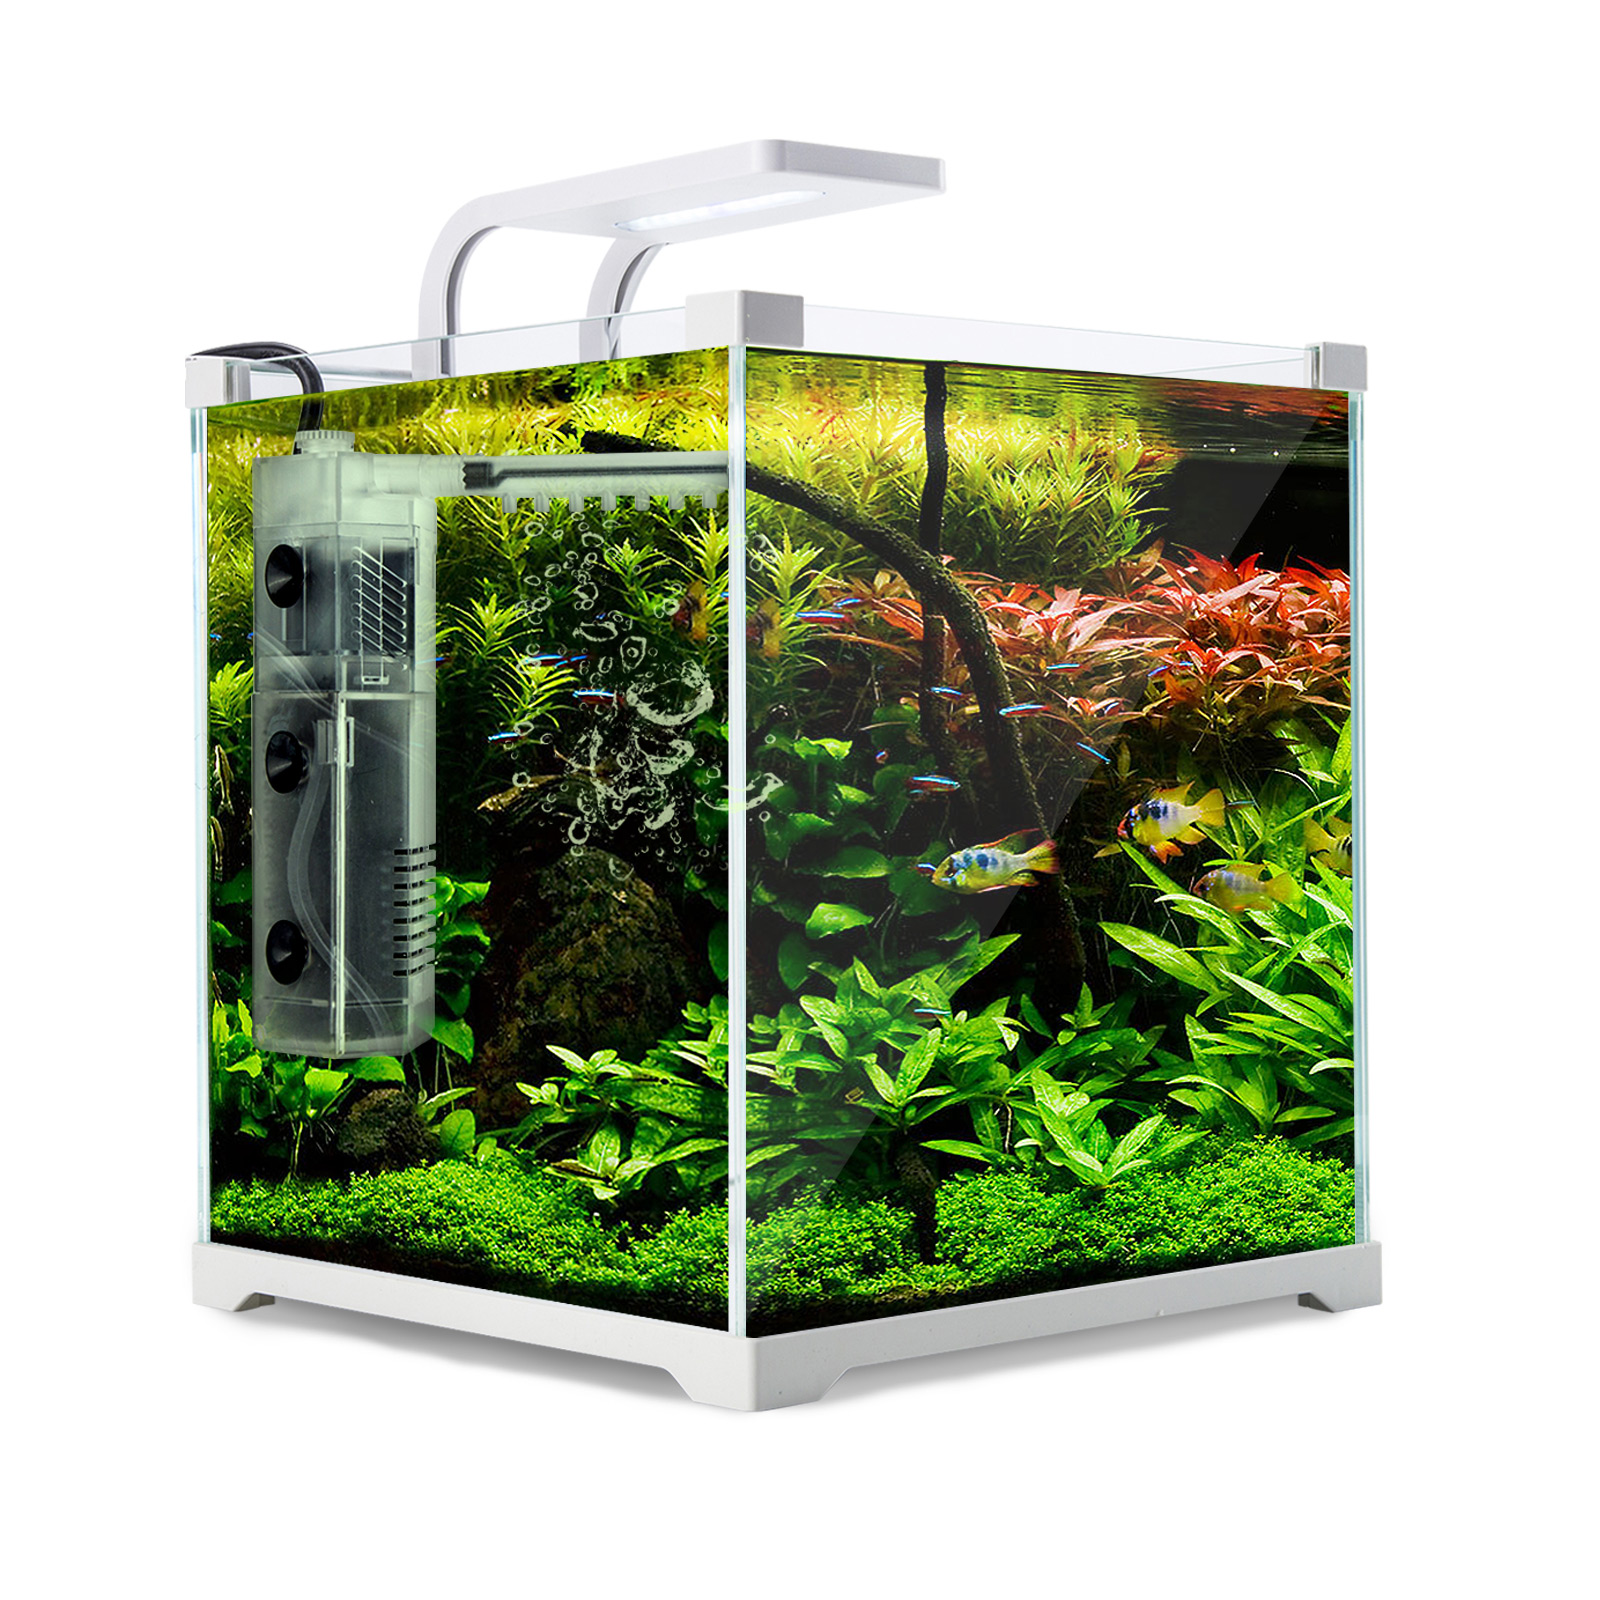 Aquarium Starfire Glass Aquarium Fish Tank 16L